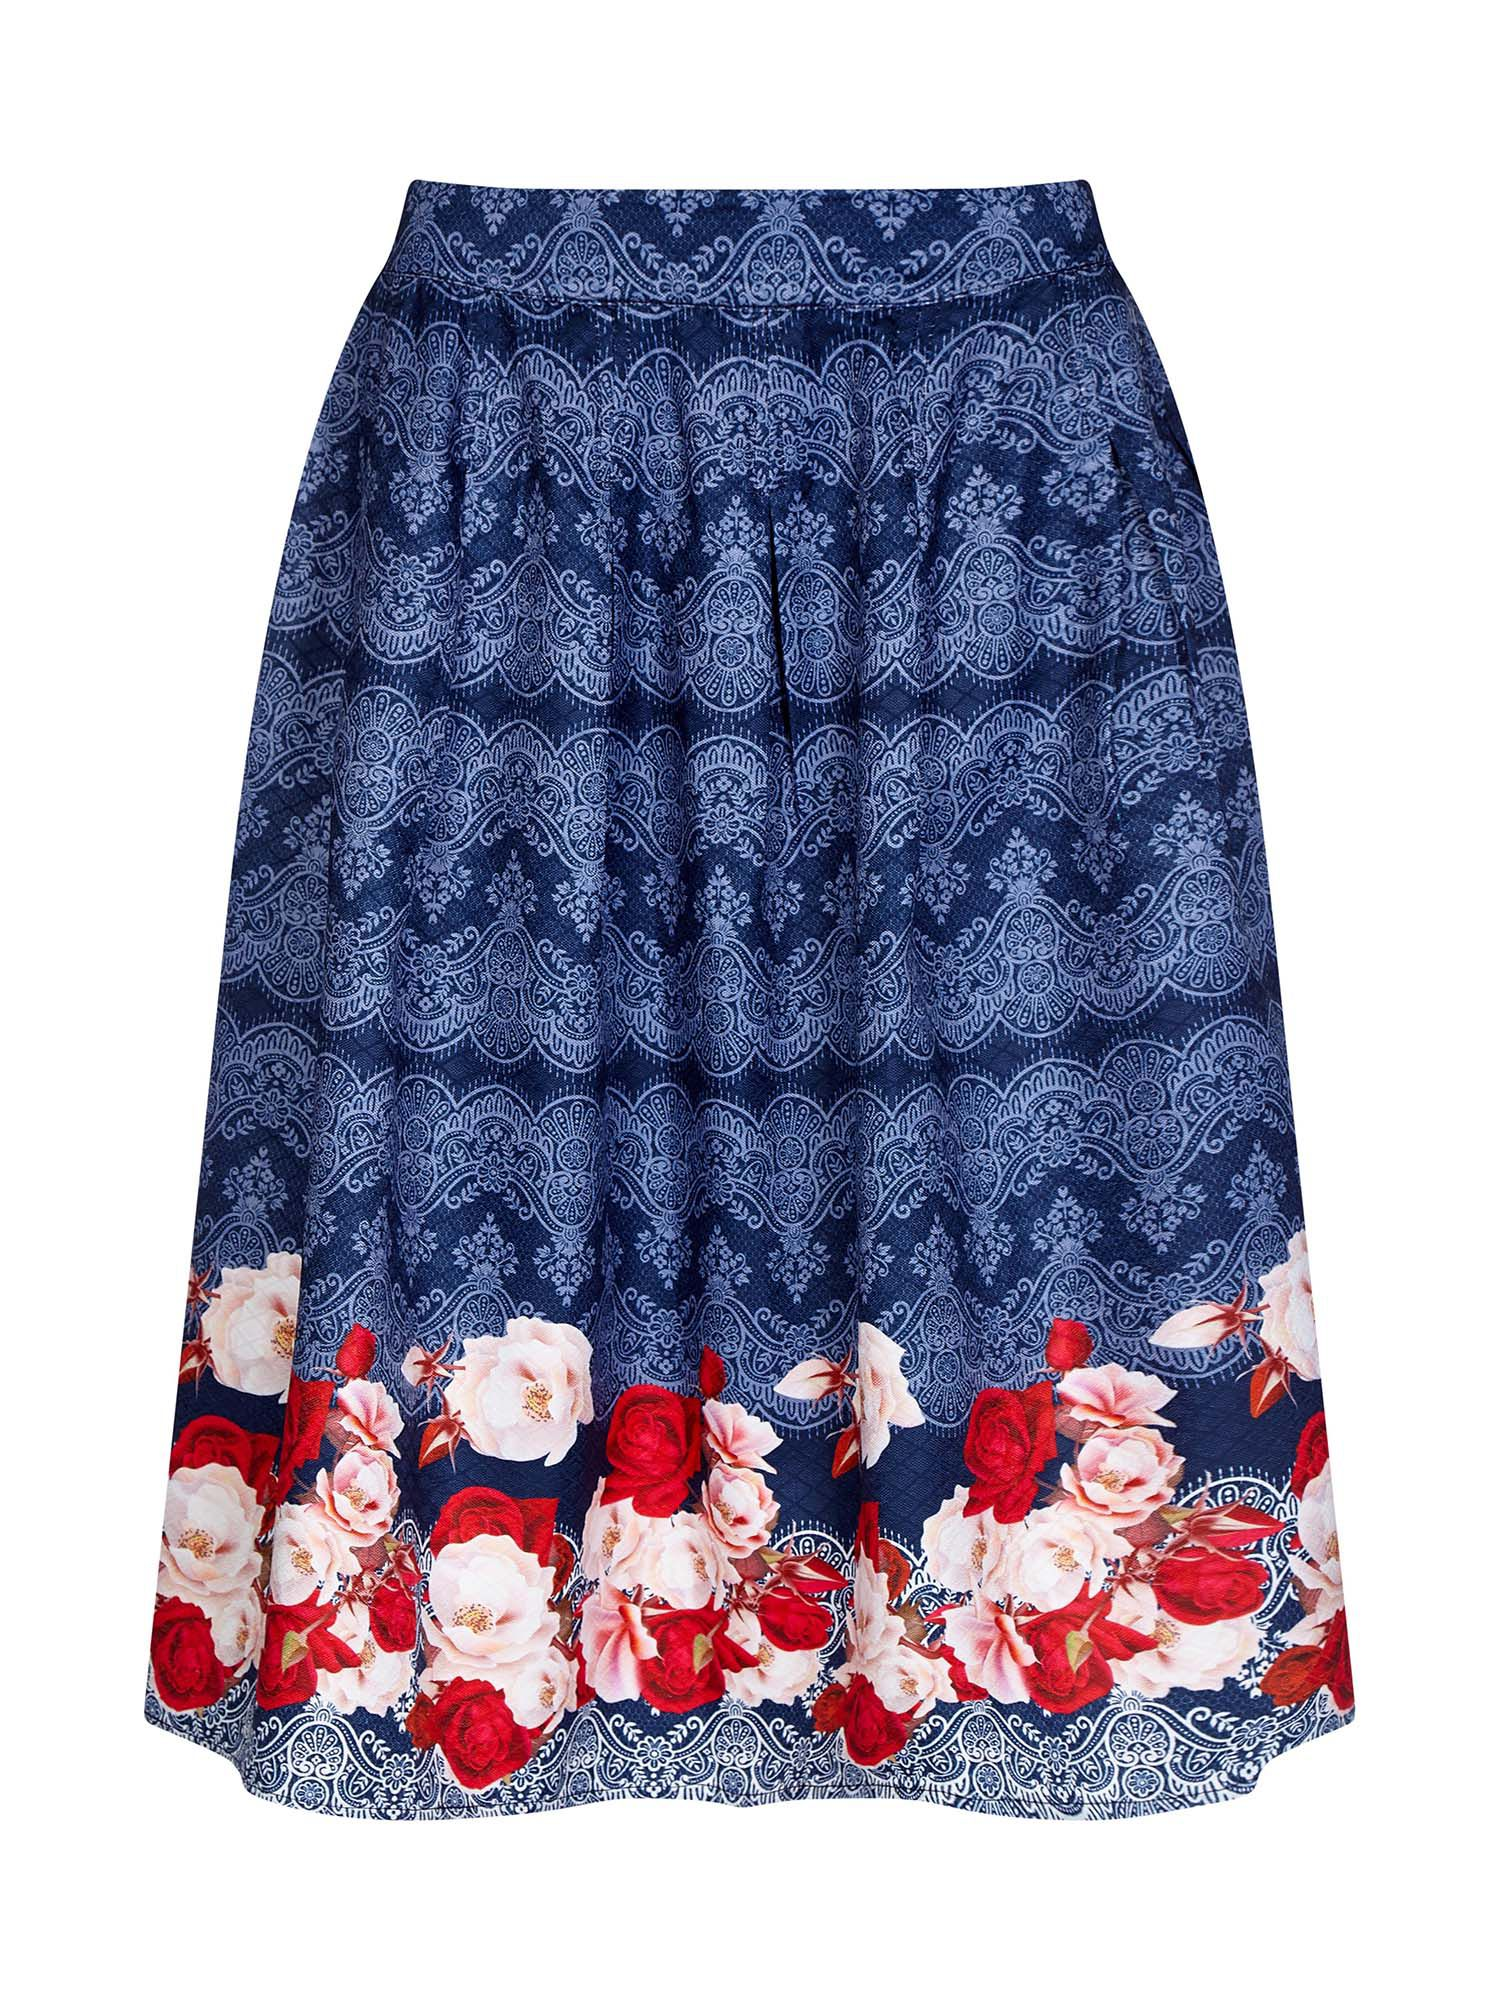 Yumi Digital Rose Printed Skirt, Blue